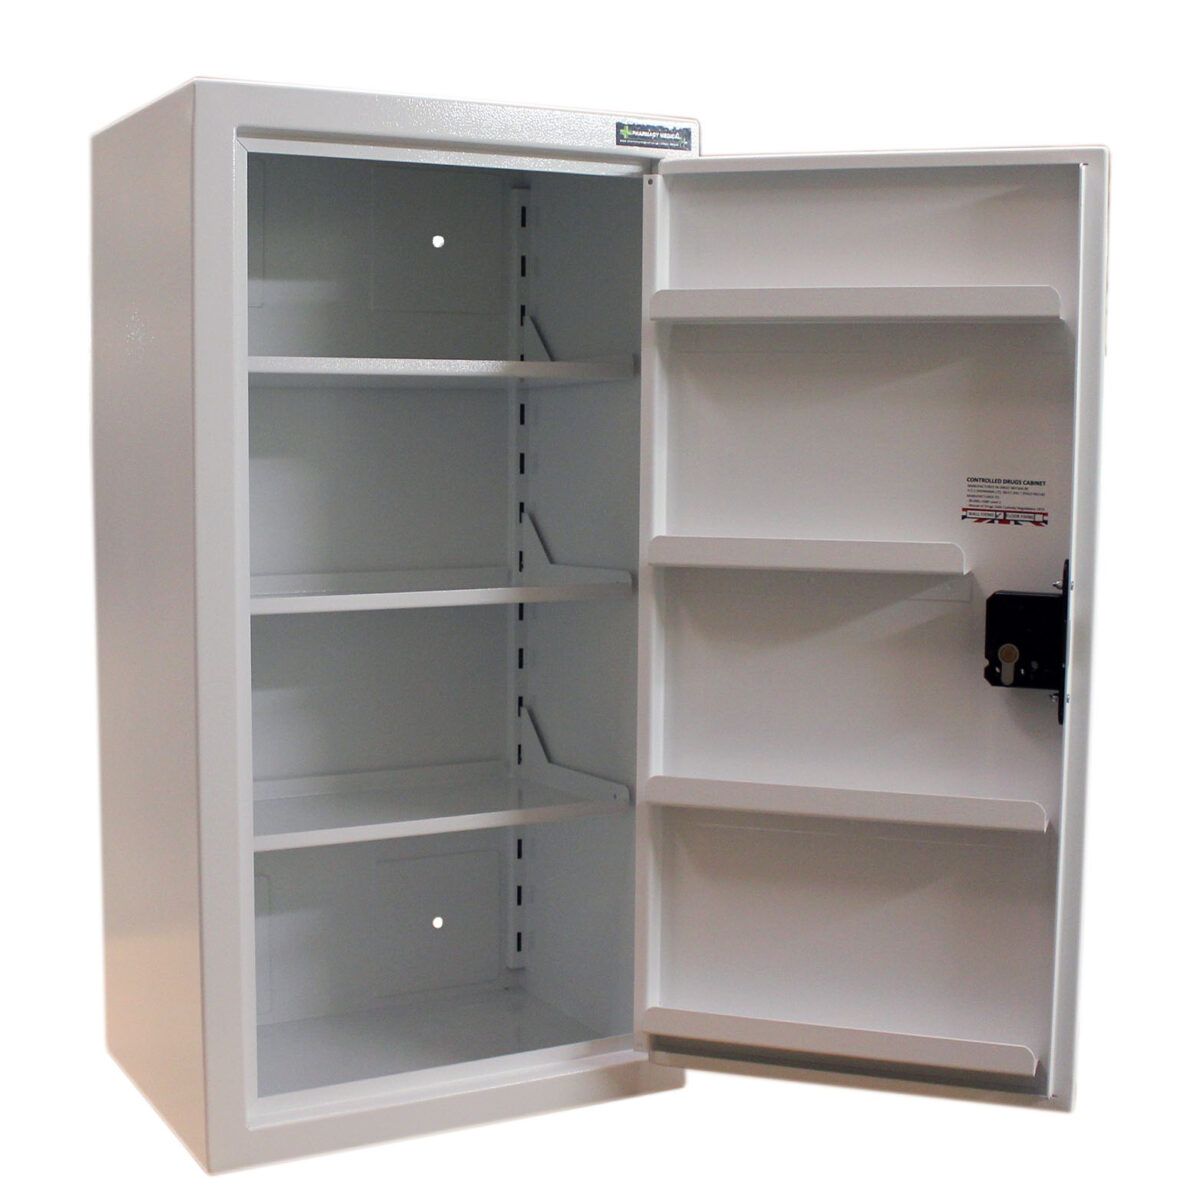 HECDC1035 Controlled drugs cabinet